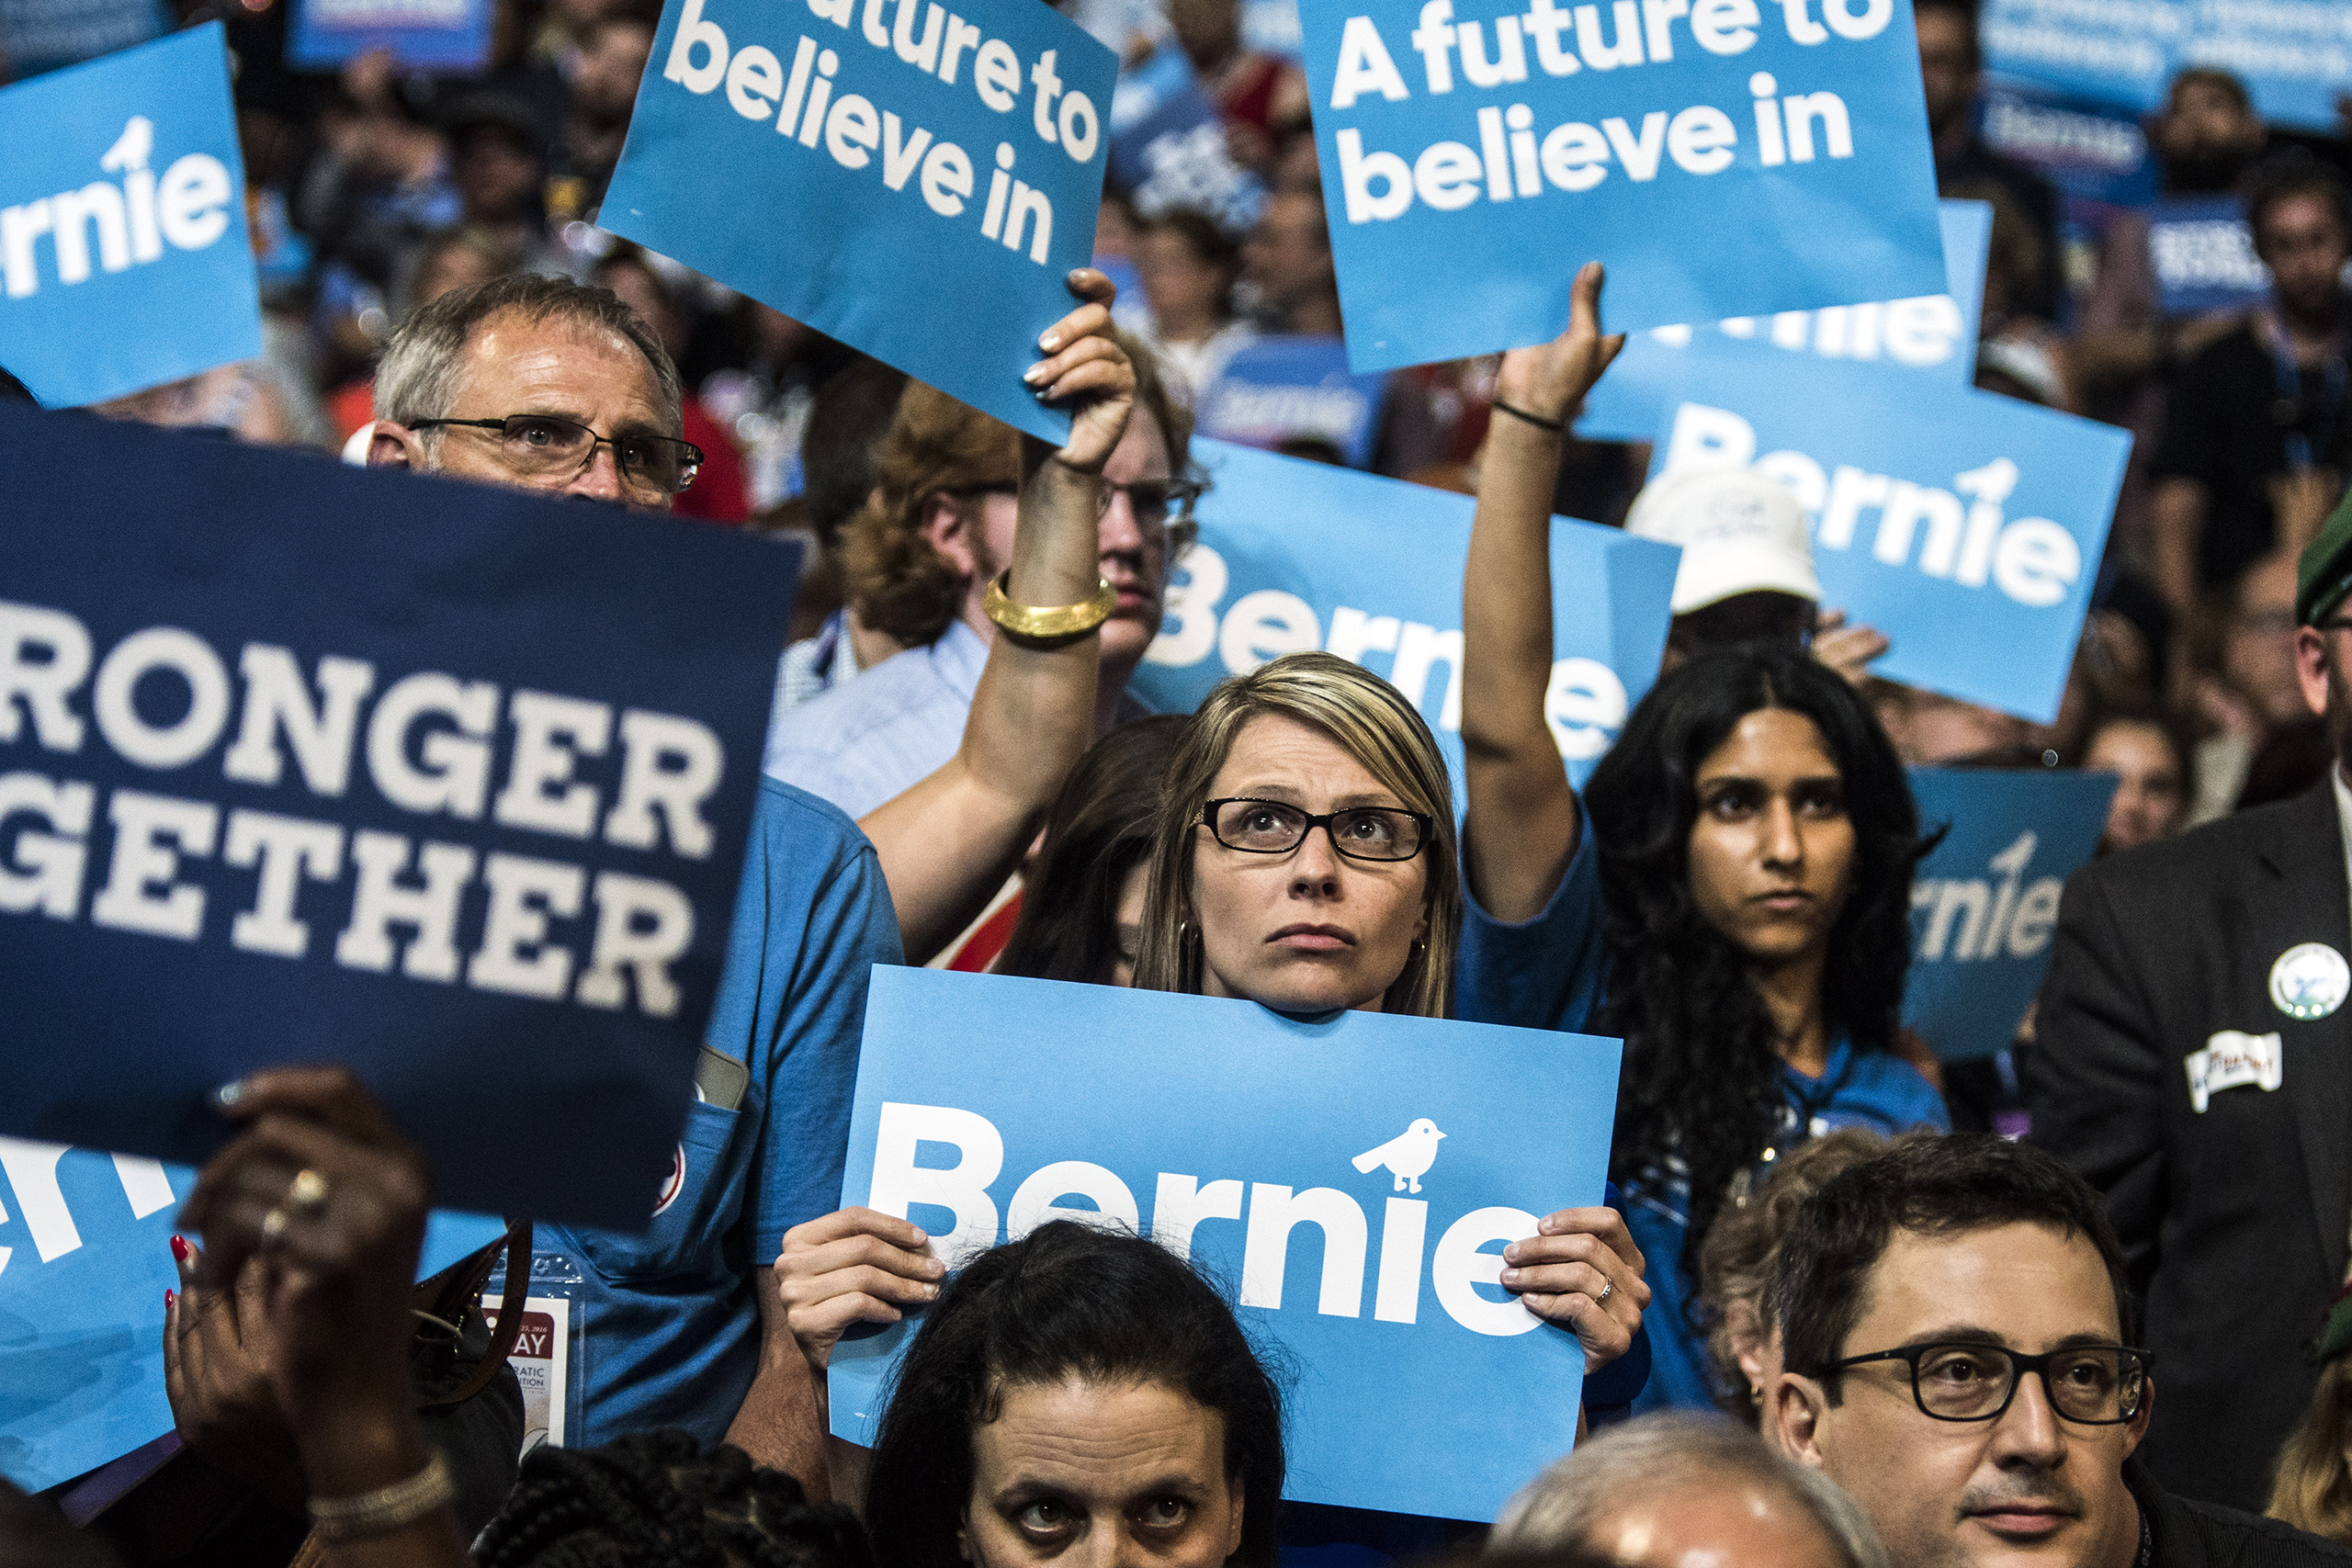 Sanders supporters during his speech on the first day of the Democratic National Convention at the Wells Fargo Center, July 25, 2016 in Philadelphia, Pennsylvania.